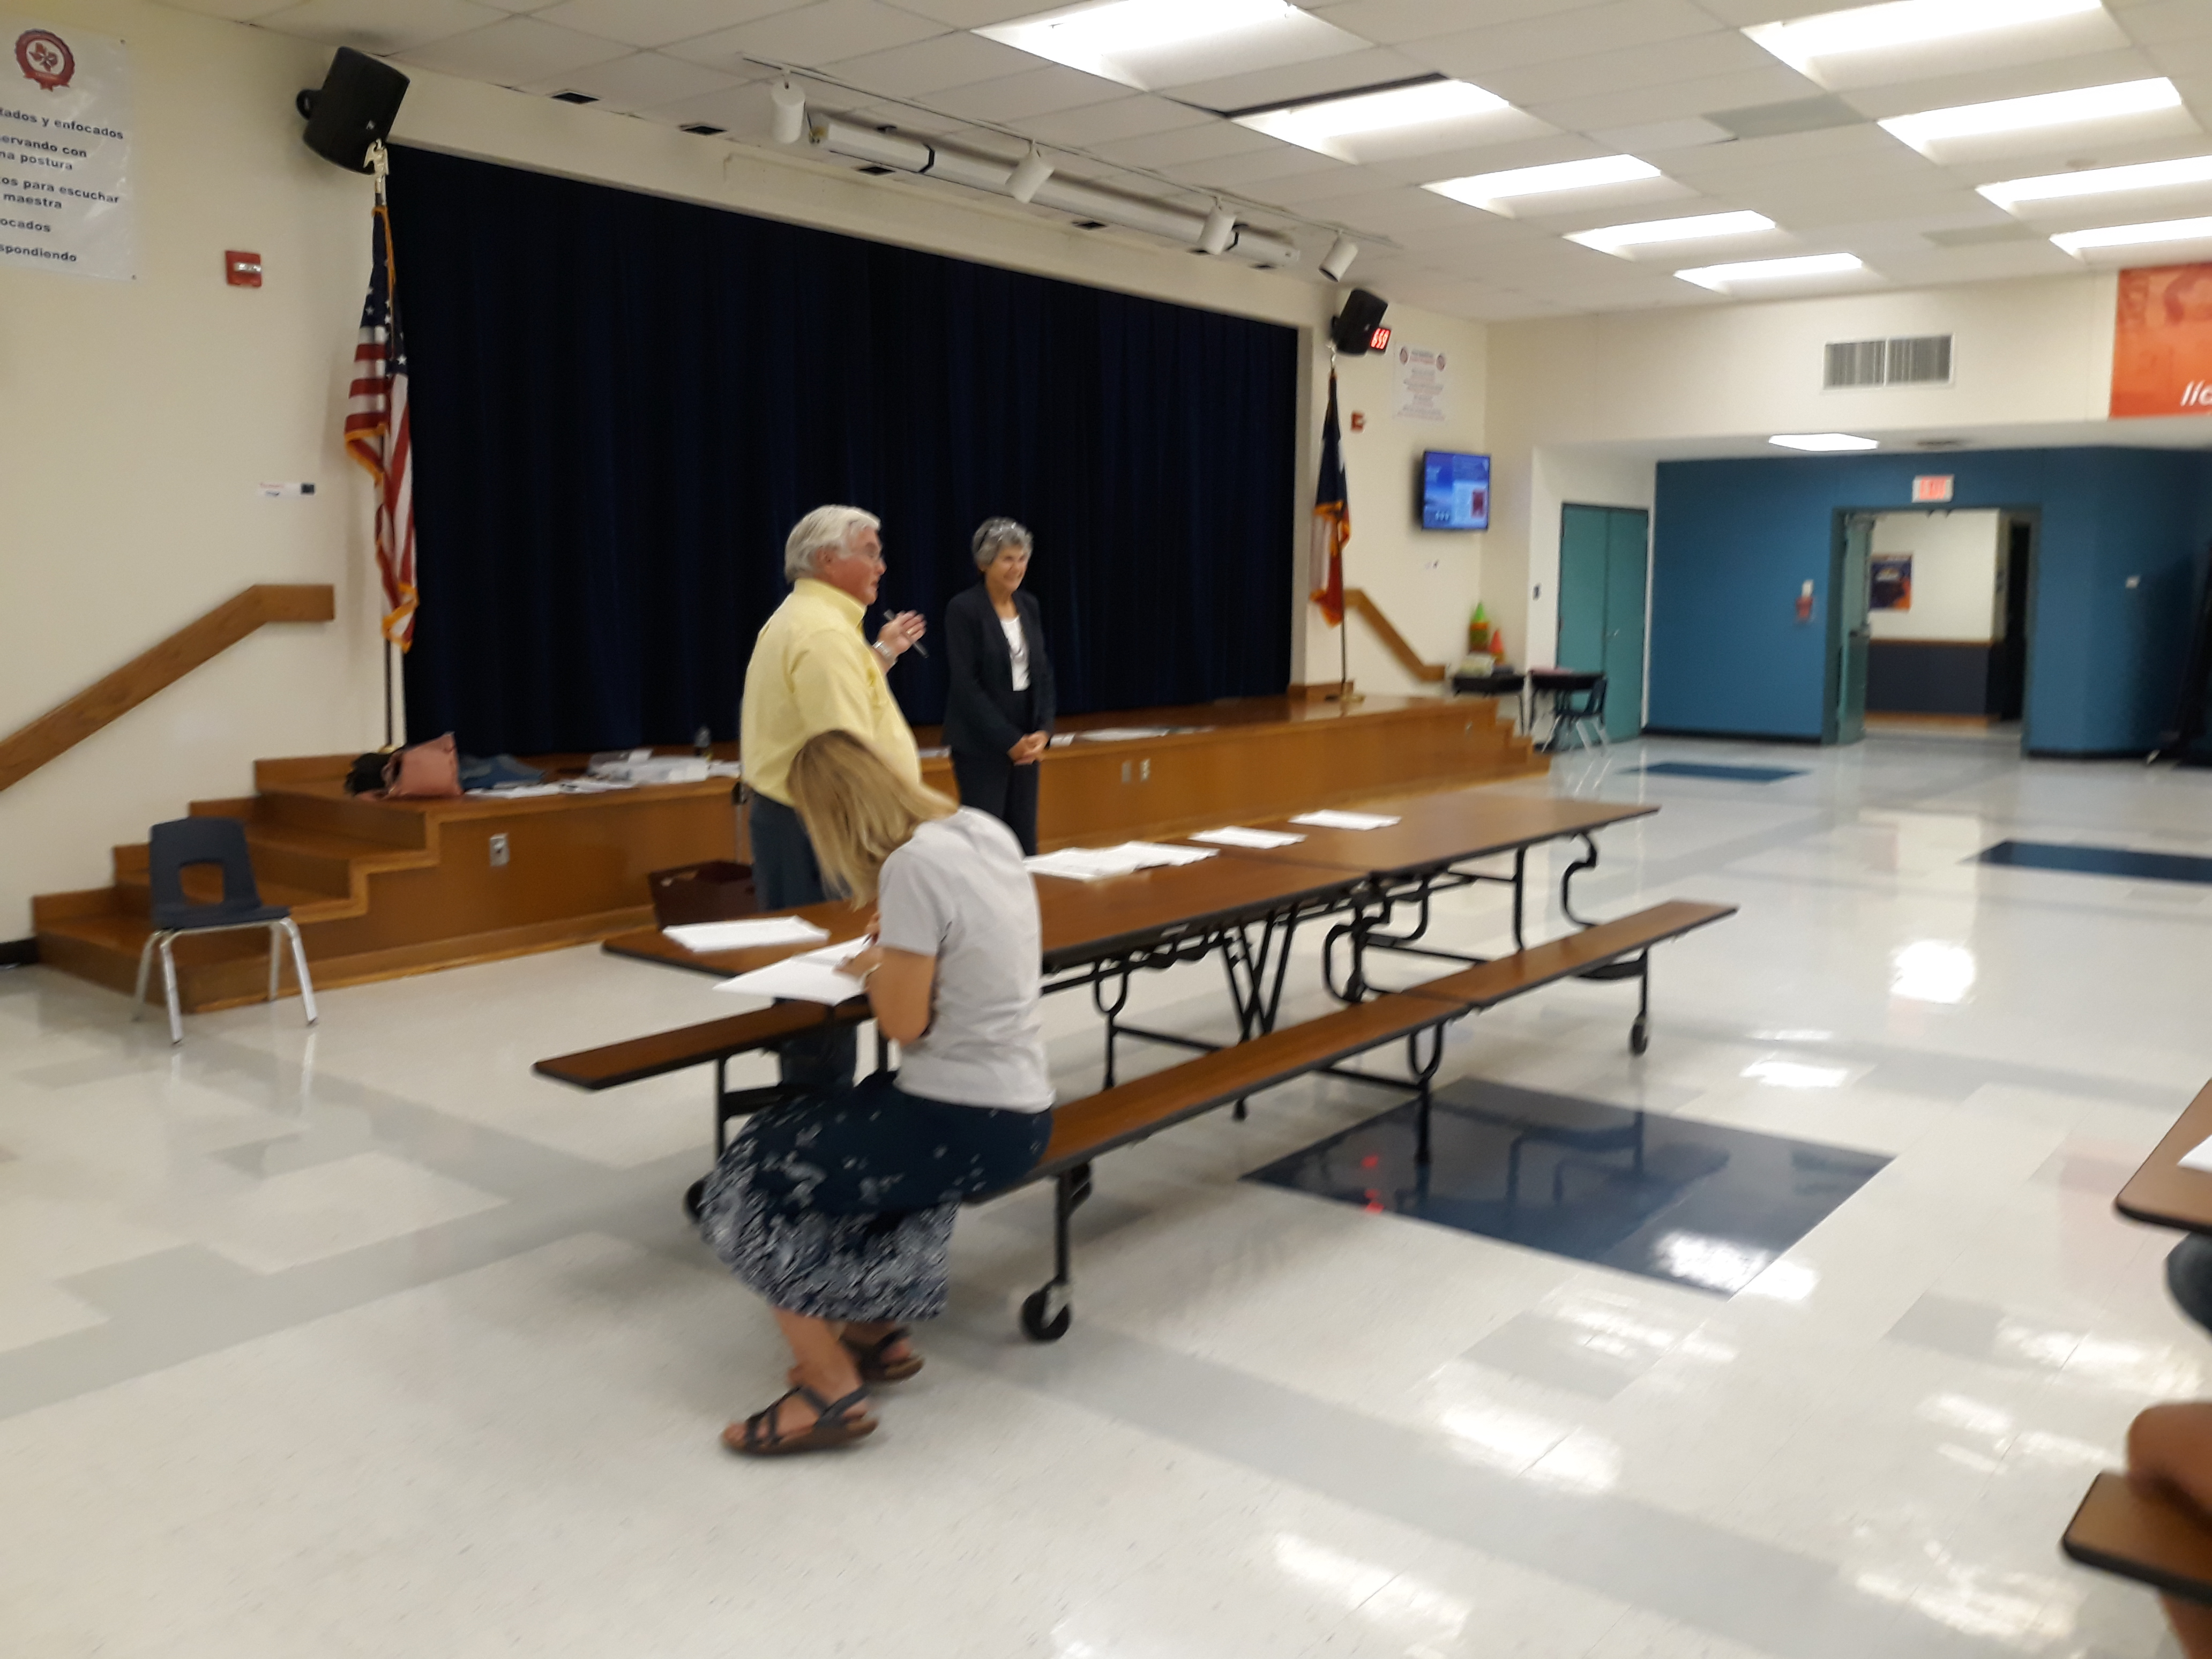 Plantation HOA Director (former VP) Bill King introduces Commissioner Cook who offered remarks on the 620 overpass constructioni, LCRA power lines by the railroad tracks, the Wilco Bond Election and the new voting machines.